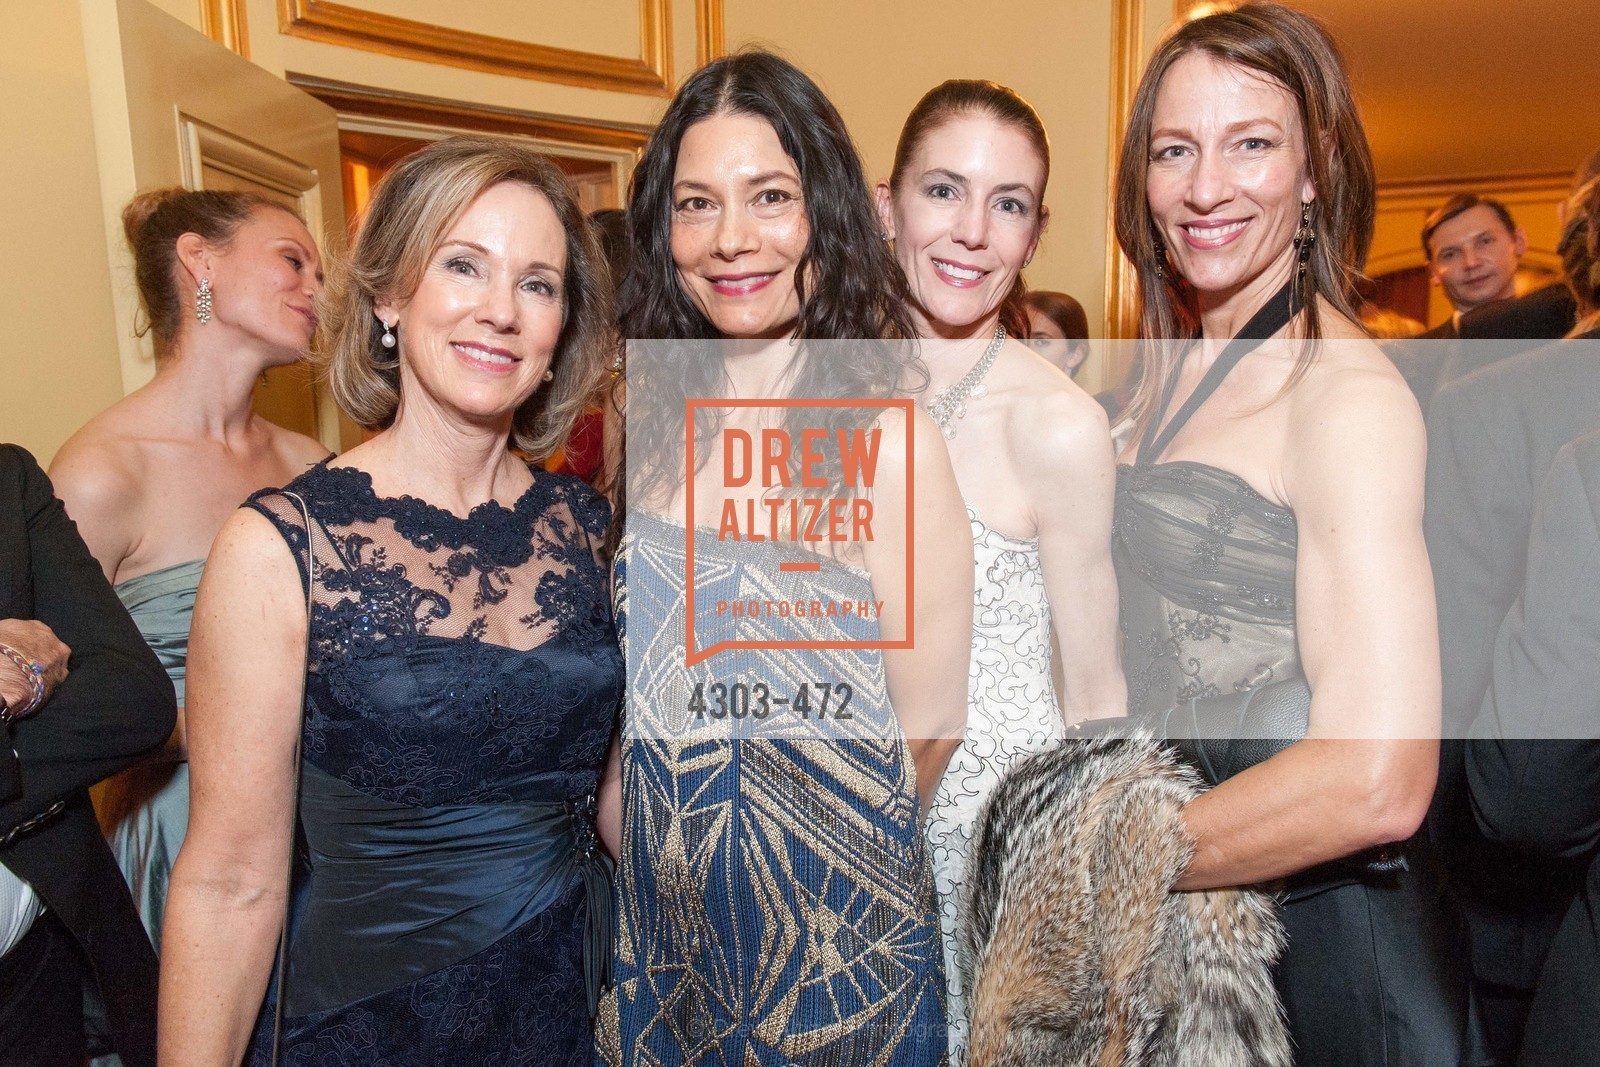 Coralie Langston-jones, SAN FRANCISCO BALLET Opening Night Gala: PHENOMENAL - Intermission & Dinner, US. SF City Hall, January 22nd, 2014,Drew Altizer, Drew Altizer Photography, full-service agency, private events, San Francisco photographer, photographer california